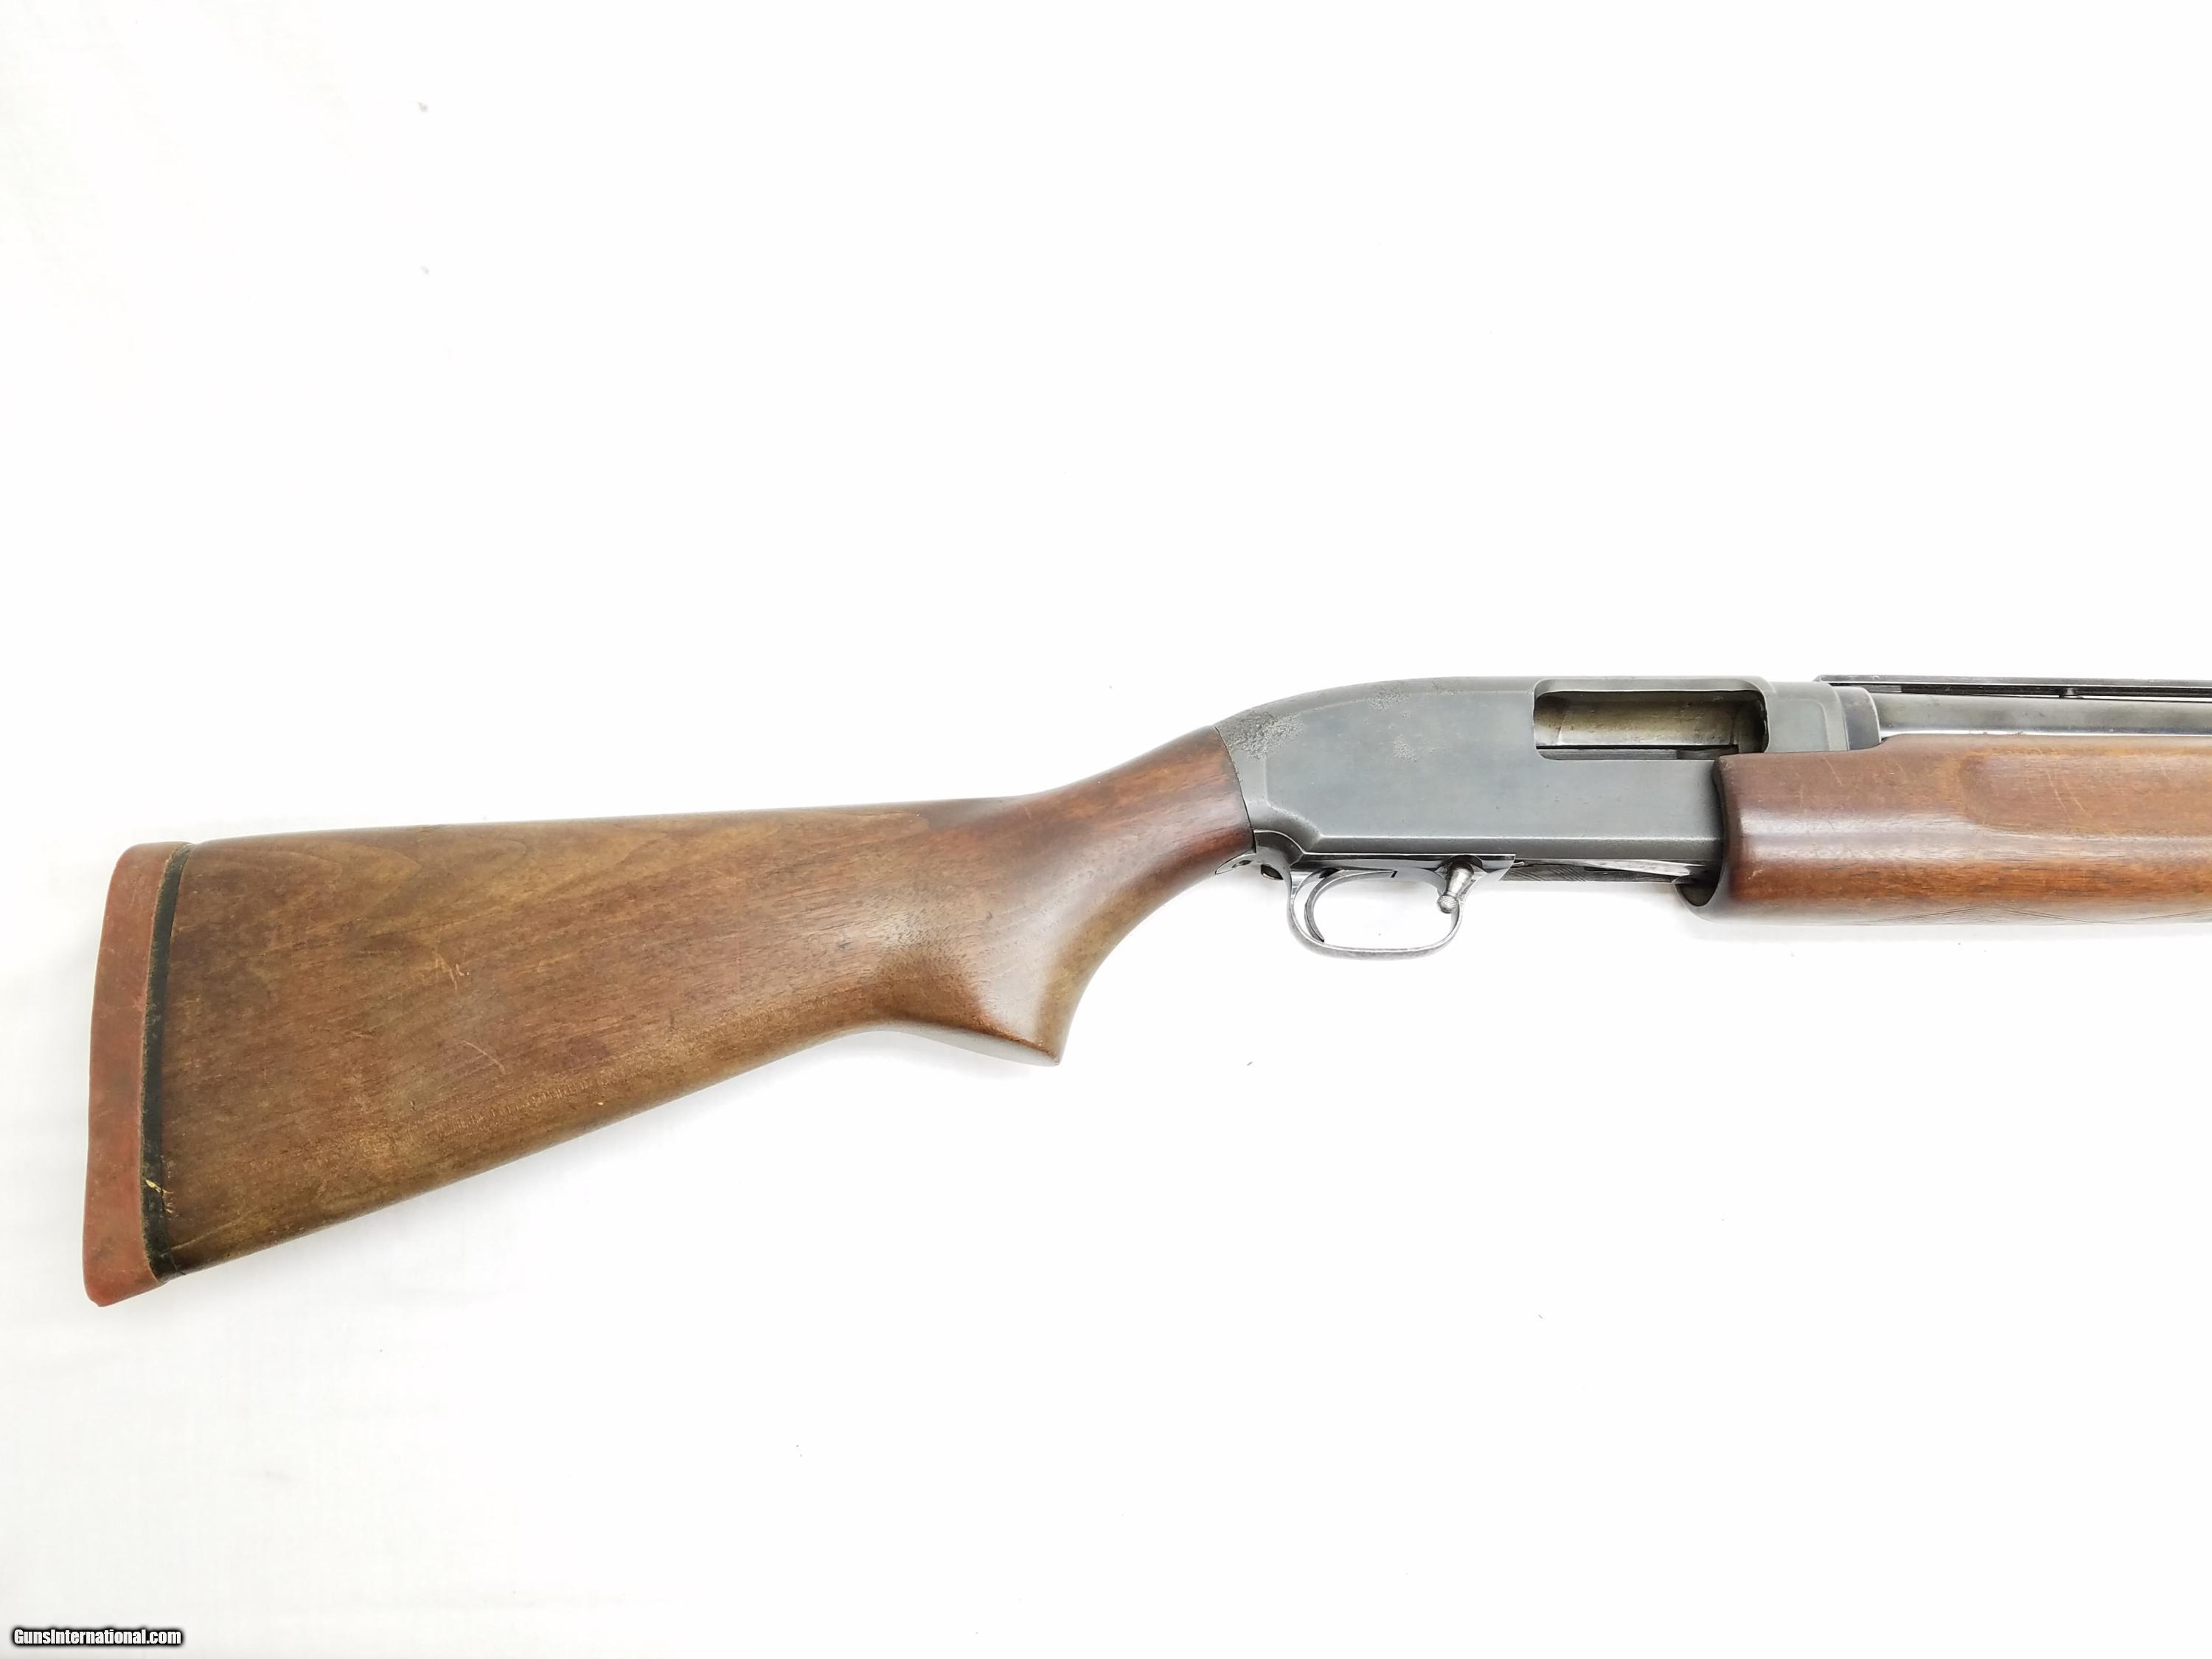 dating winchester model 12 shotguns More than 40 years ago, the model 1100 forever changed the way american shooters viewed autoloading shotguns it was the first autoloader to combine the repeat-shot versatility of early-century models with the sleek, modern lines and handling qualities of revered double barrels.